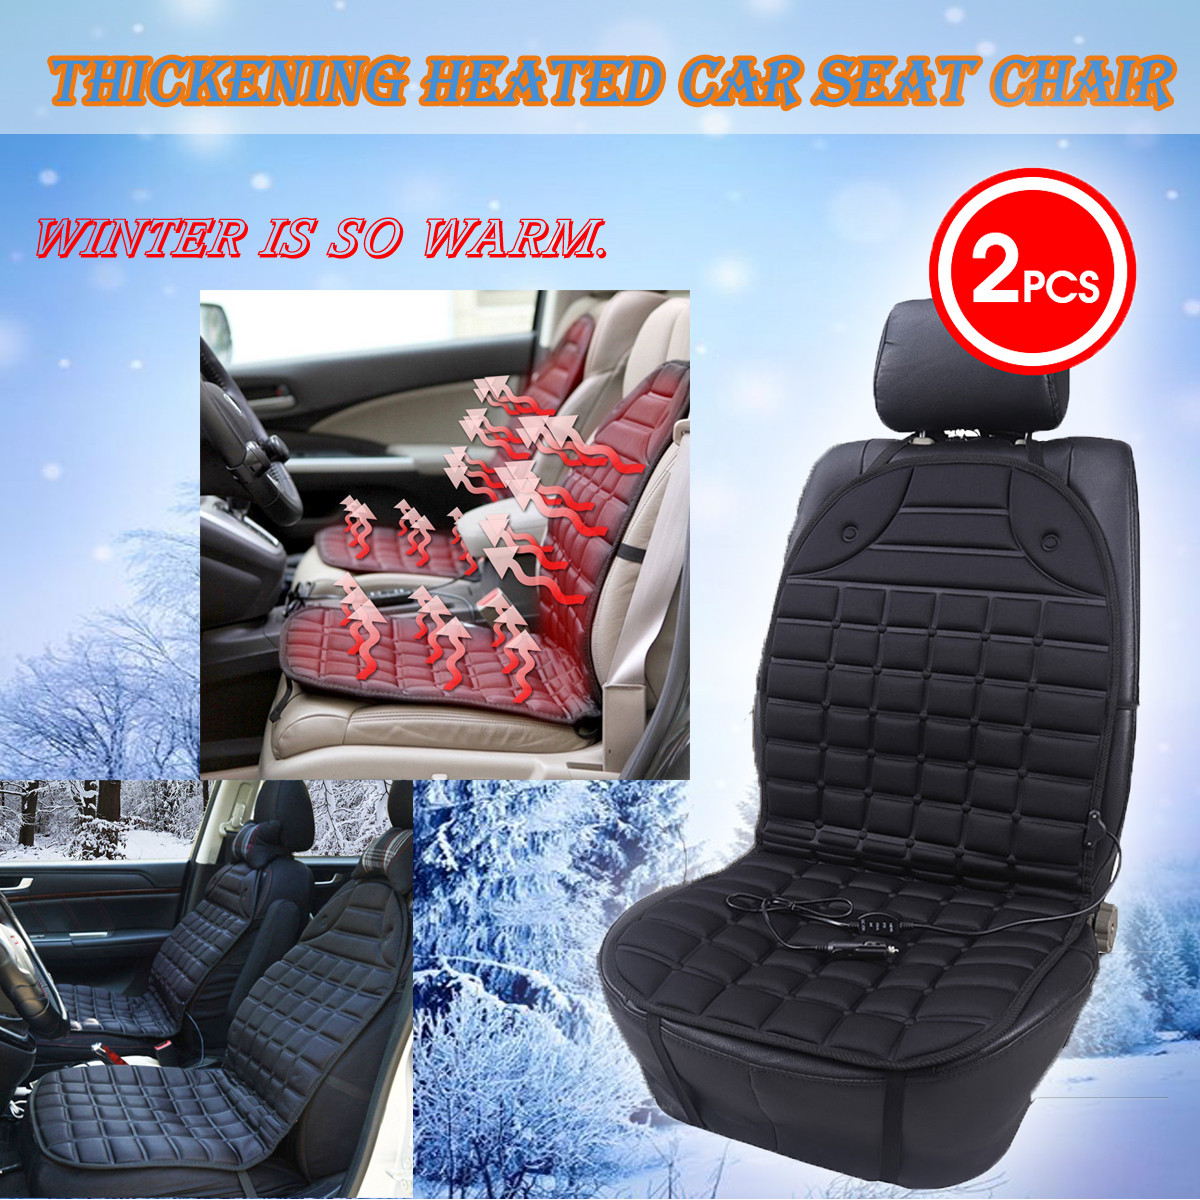 2Pcs Auto 12V Universal Electric Car Heated Seat Cushion Cover Heating Warmer Massage Seat Pad For Winter Car Conjoined Supplies 2pcs 12v universal car heated seat covers pad carbon fiber heated auto car seat heating pad winter warmer heater mat